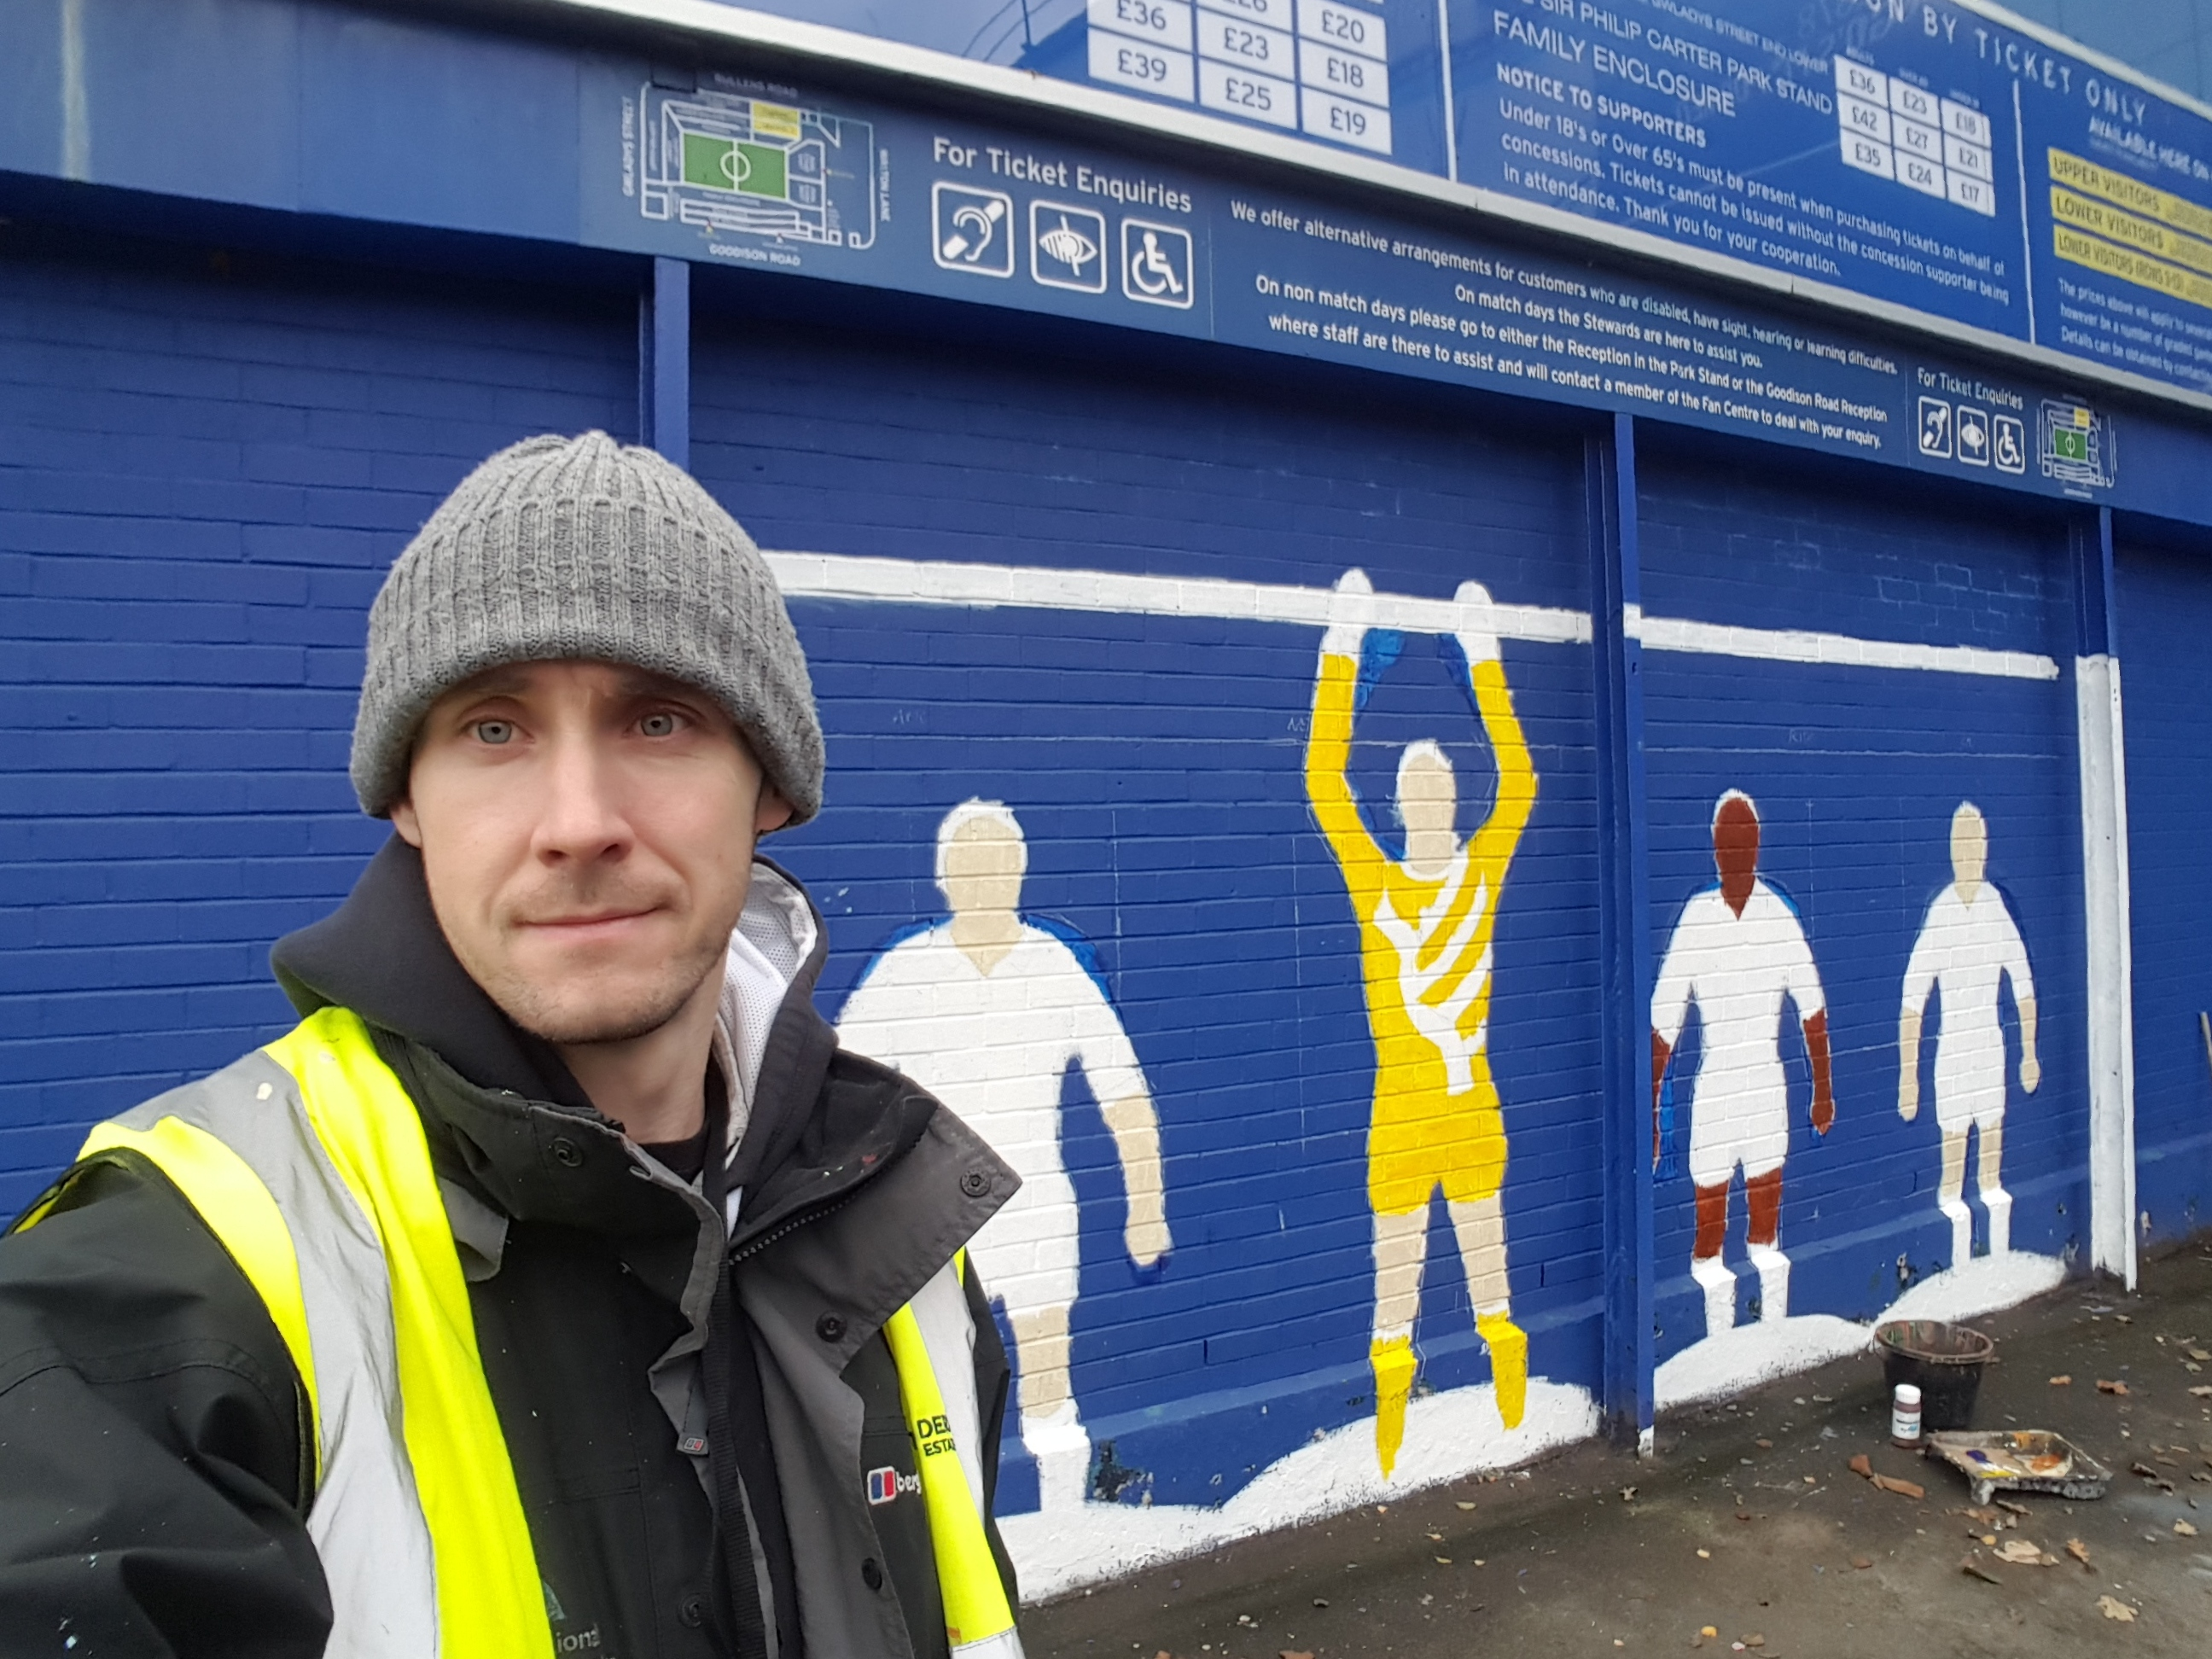 EFC Subbuteo Mural, work in progress